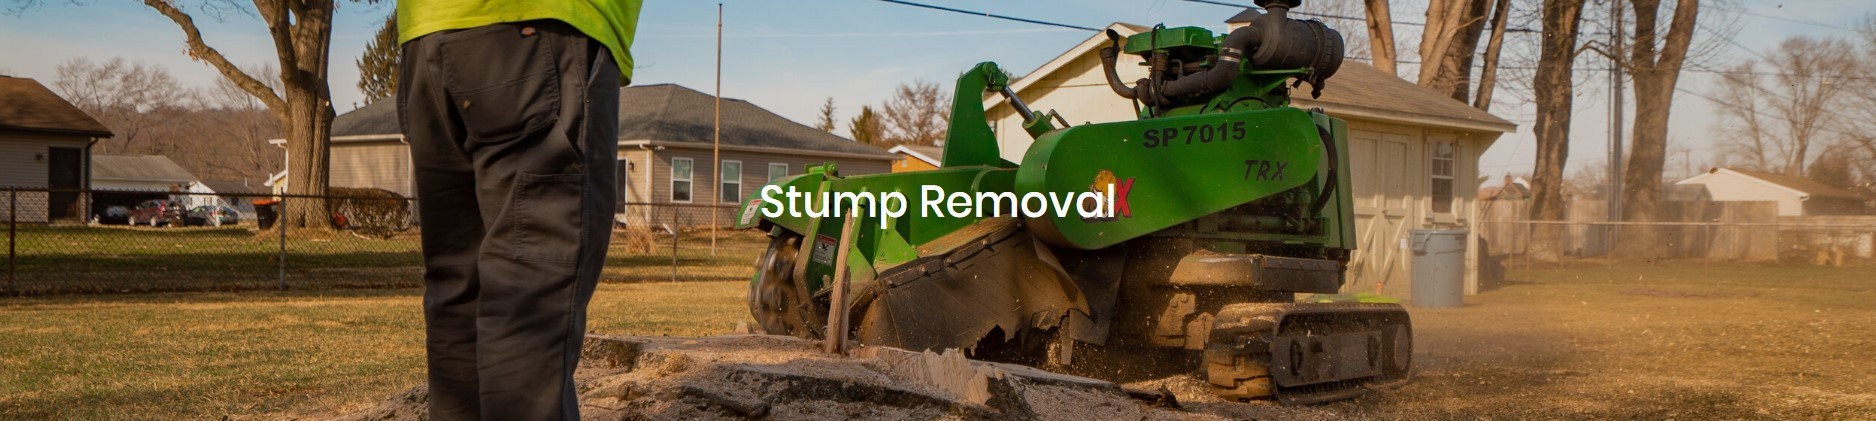 Stump Removal.jpg